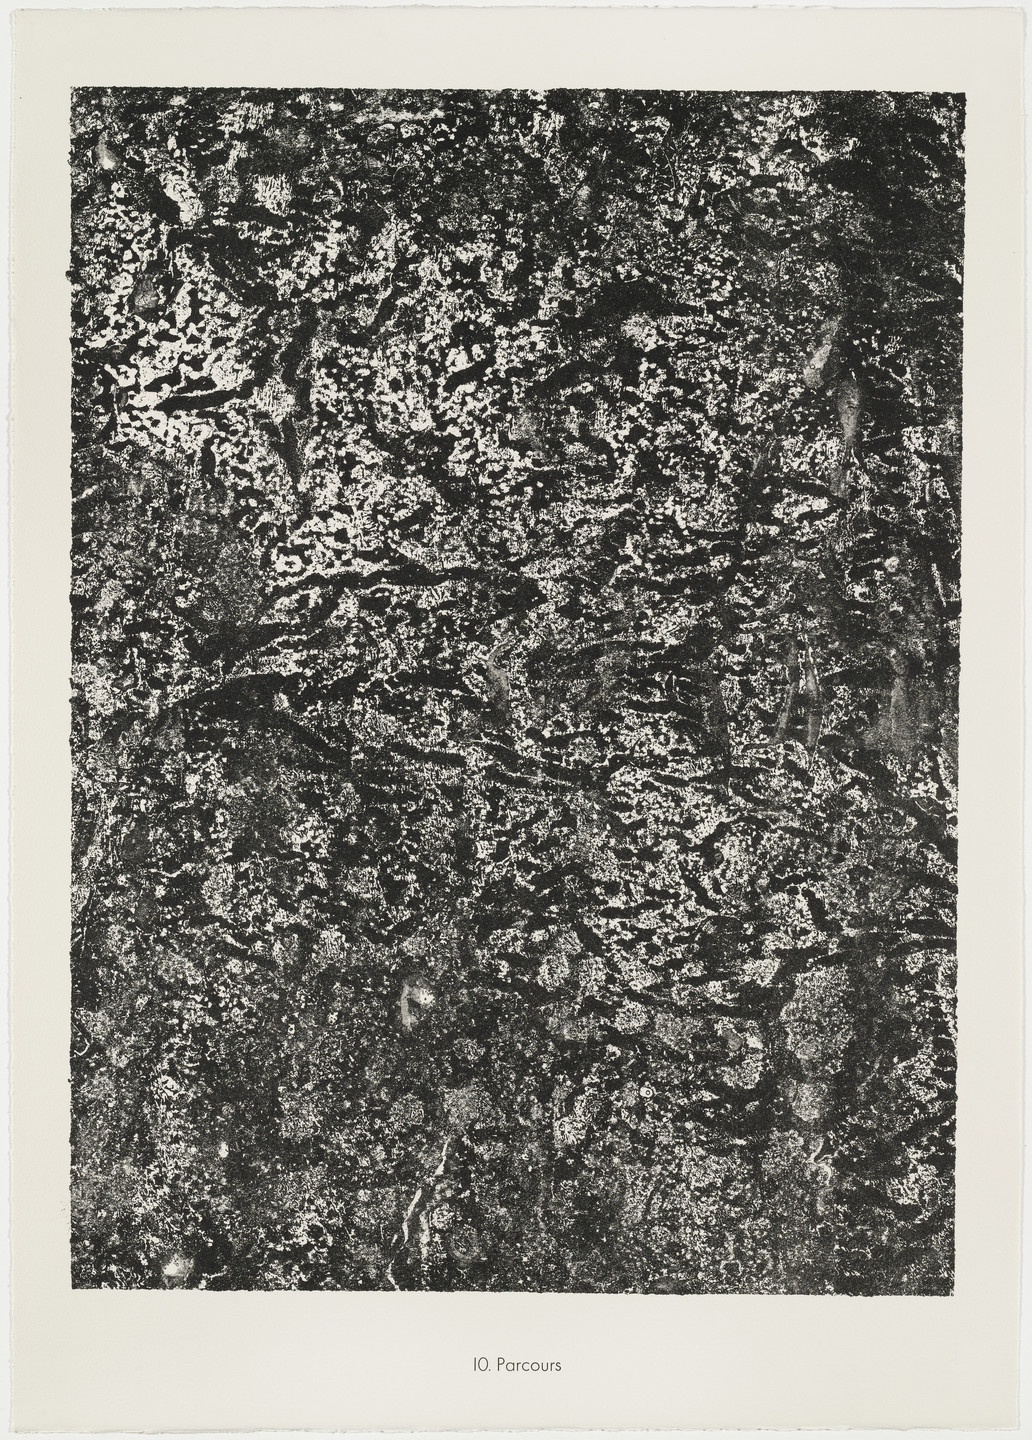 Jean Dubuffet. Paths (Parcours) from the portfolio Soil, Earth (Sols, terres) from Phenomena (Les Phénomènes). 1959